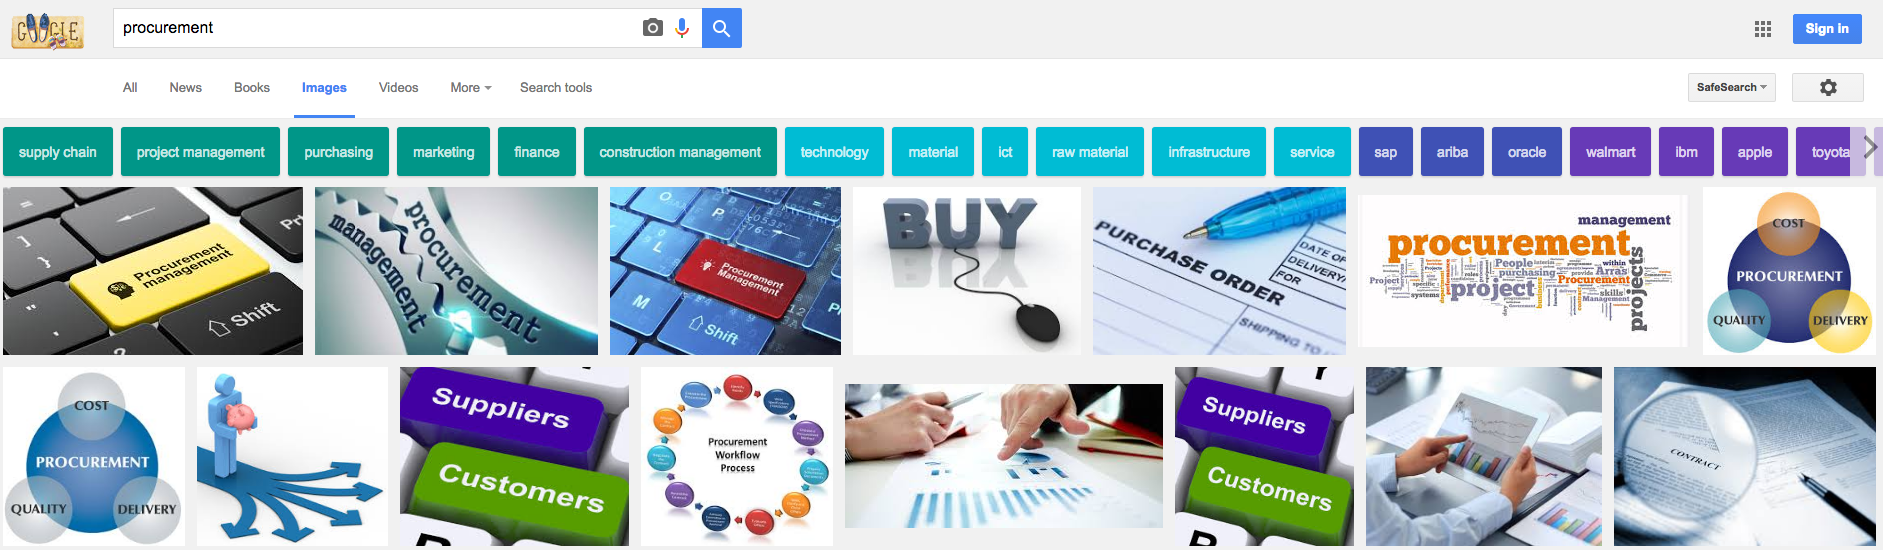 LexisNexis and Google Latest to Innovate With Color Enhanced Search Results Features